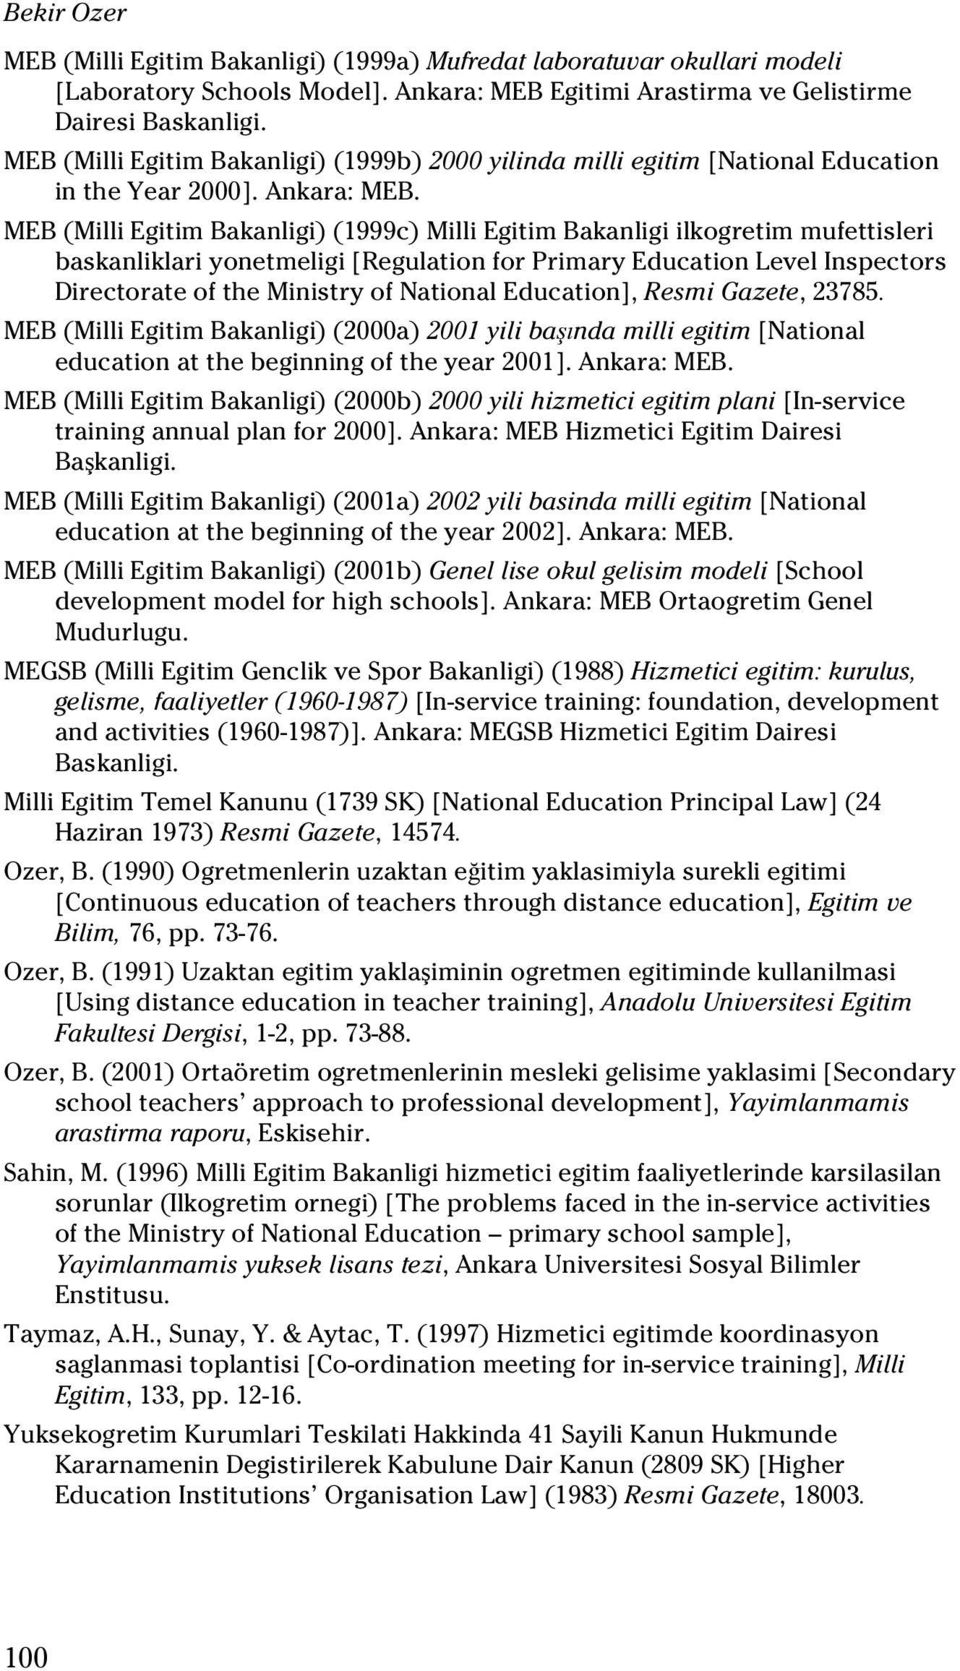 MEB (Milli Egitim Bakanligi) (1999c) Milli Egitim Bakanligi ilkogretim mufettisleri baskanliklari yonetmeligi [Regulation for Primary Education Level Inspectors Directorate of the Ministry of